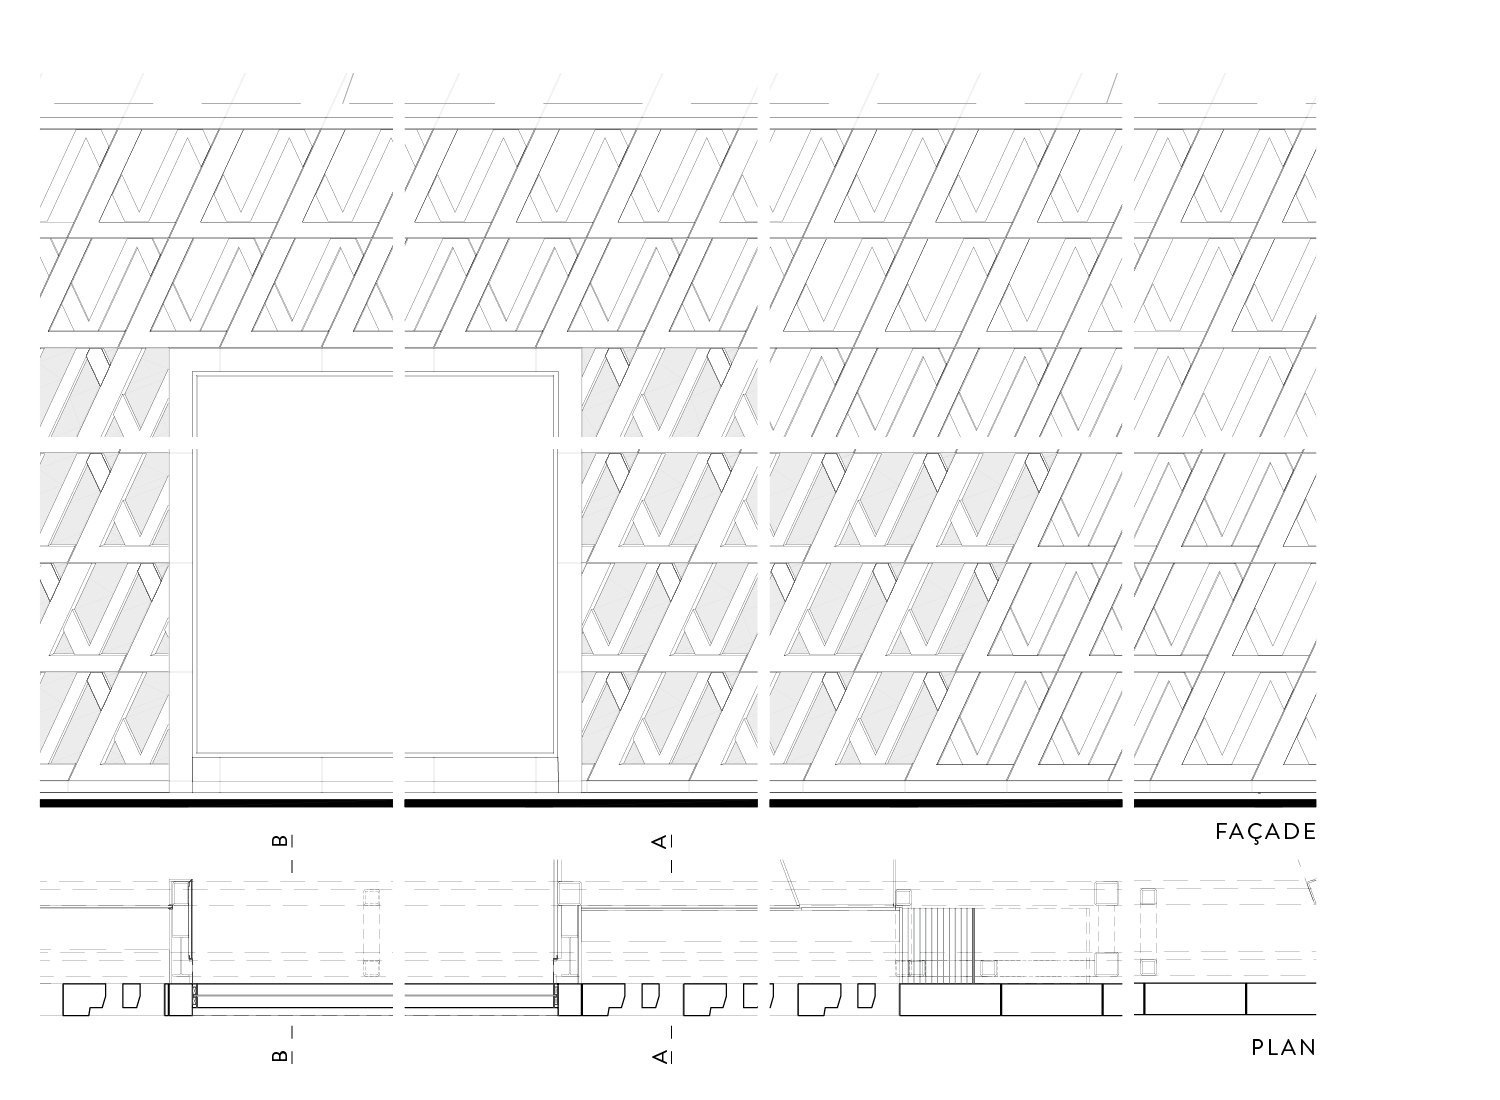 Section of the plan & facades Materia}